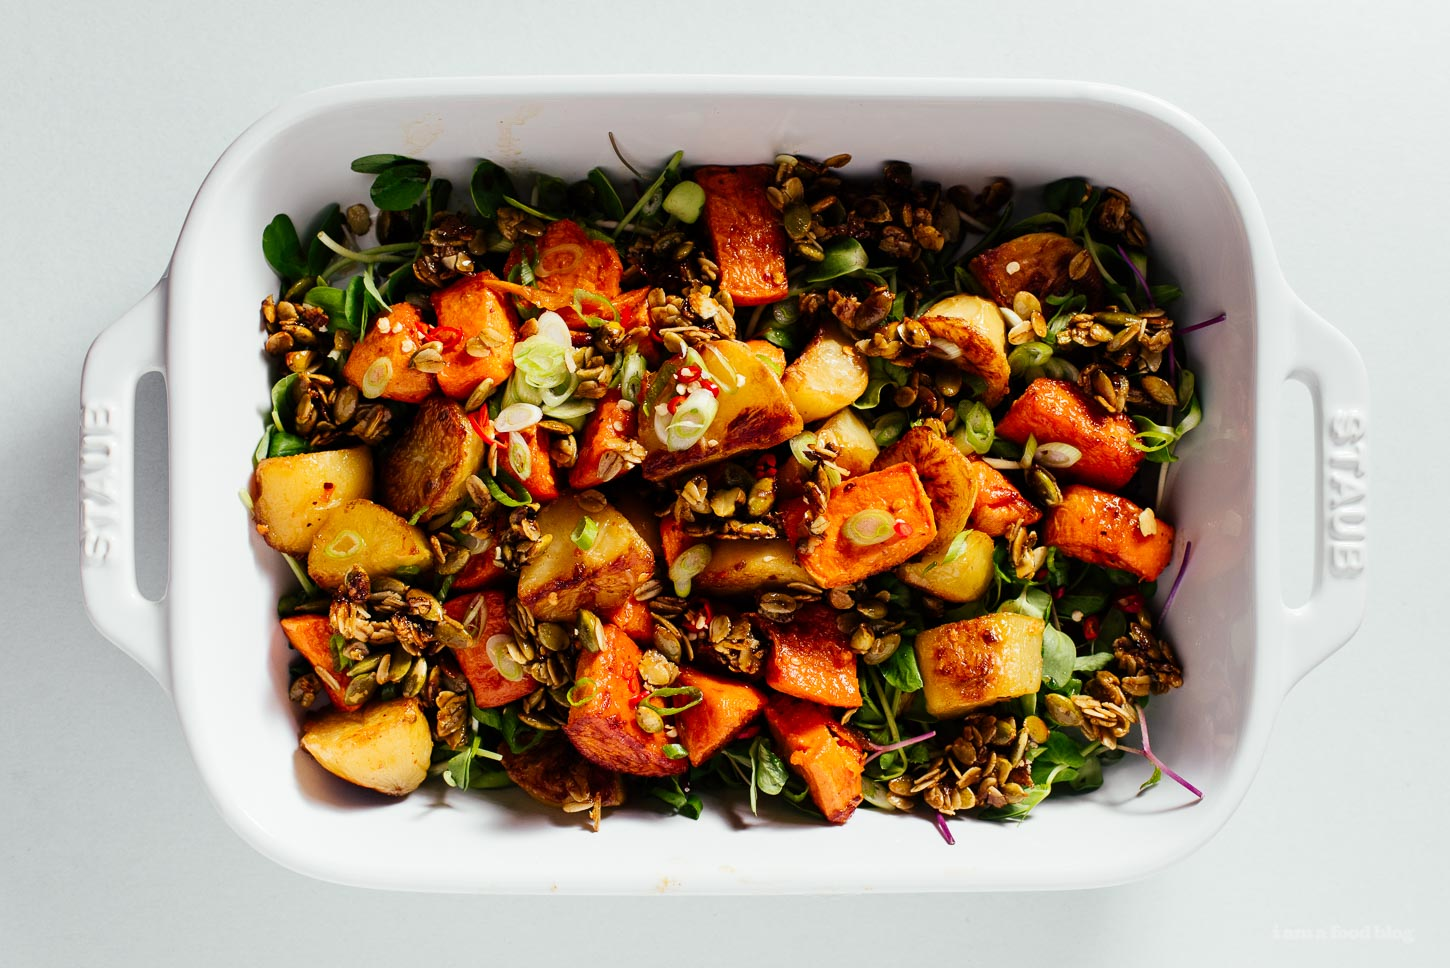 chili roasted potatoes and sweet potatoes with savory crunchy granola | www.iamafoodblog.com